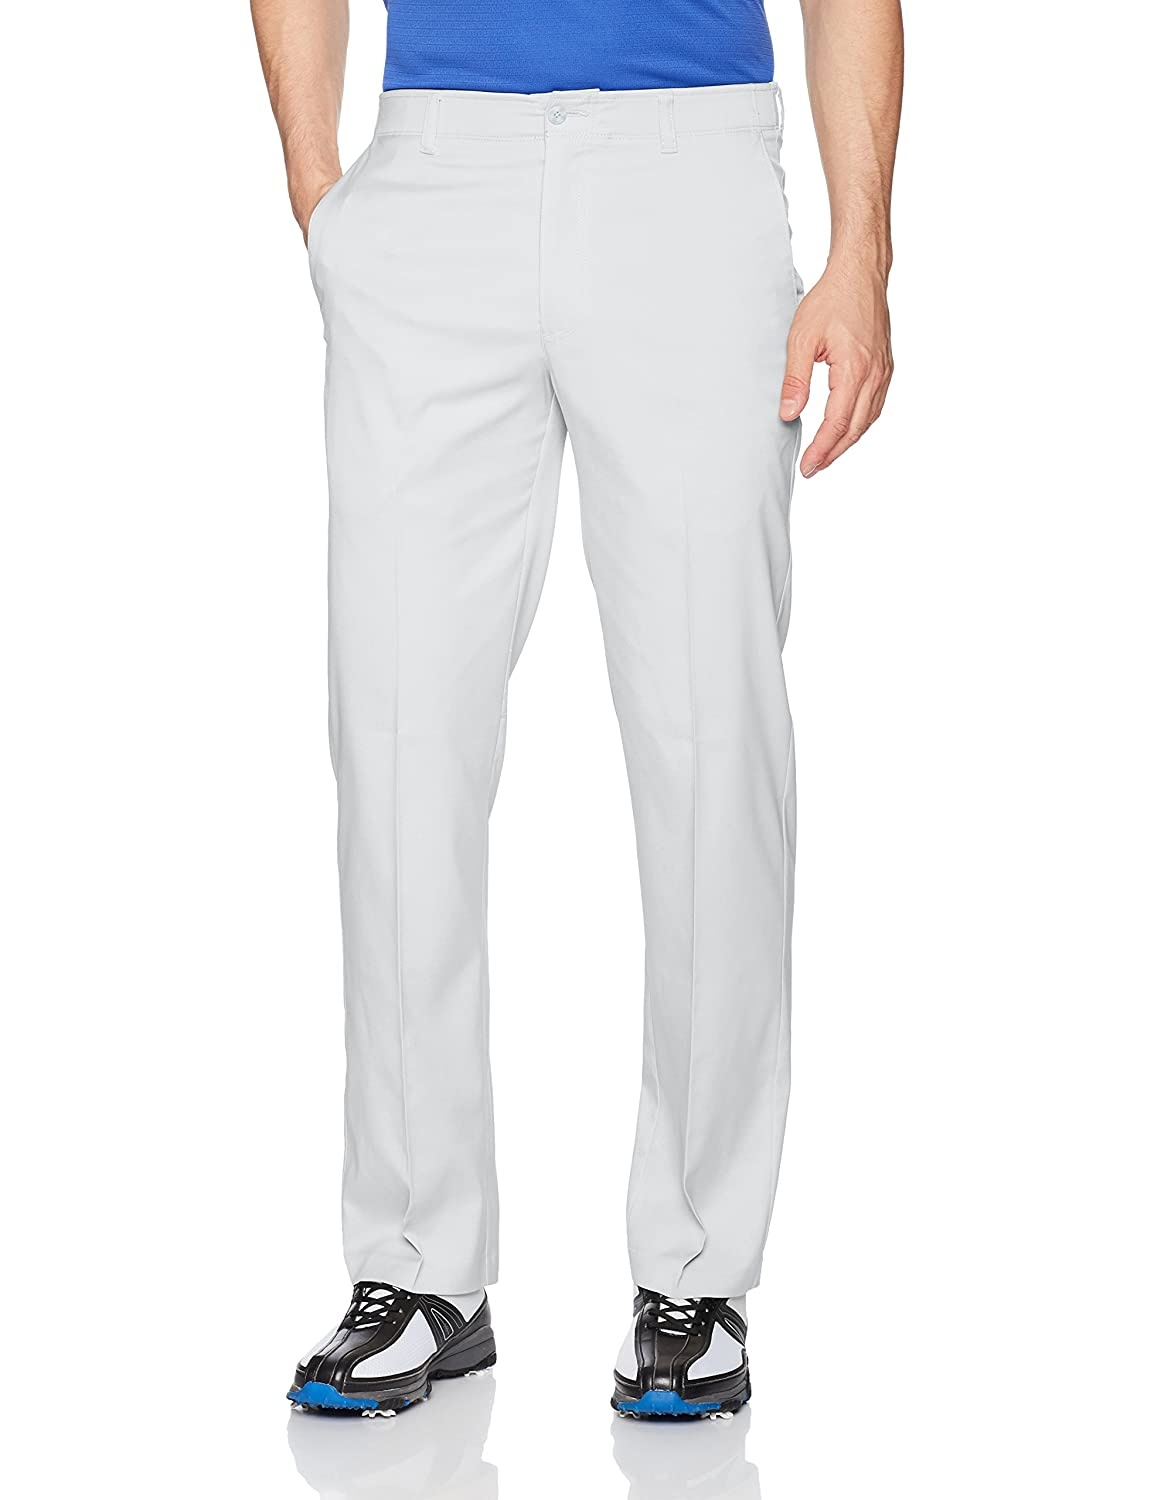 PGA TOUR herren Motionflux 360 Flat Front Pants With Active Waistband  Golfhose